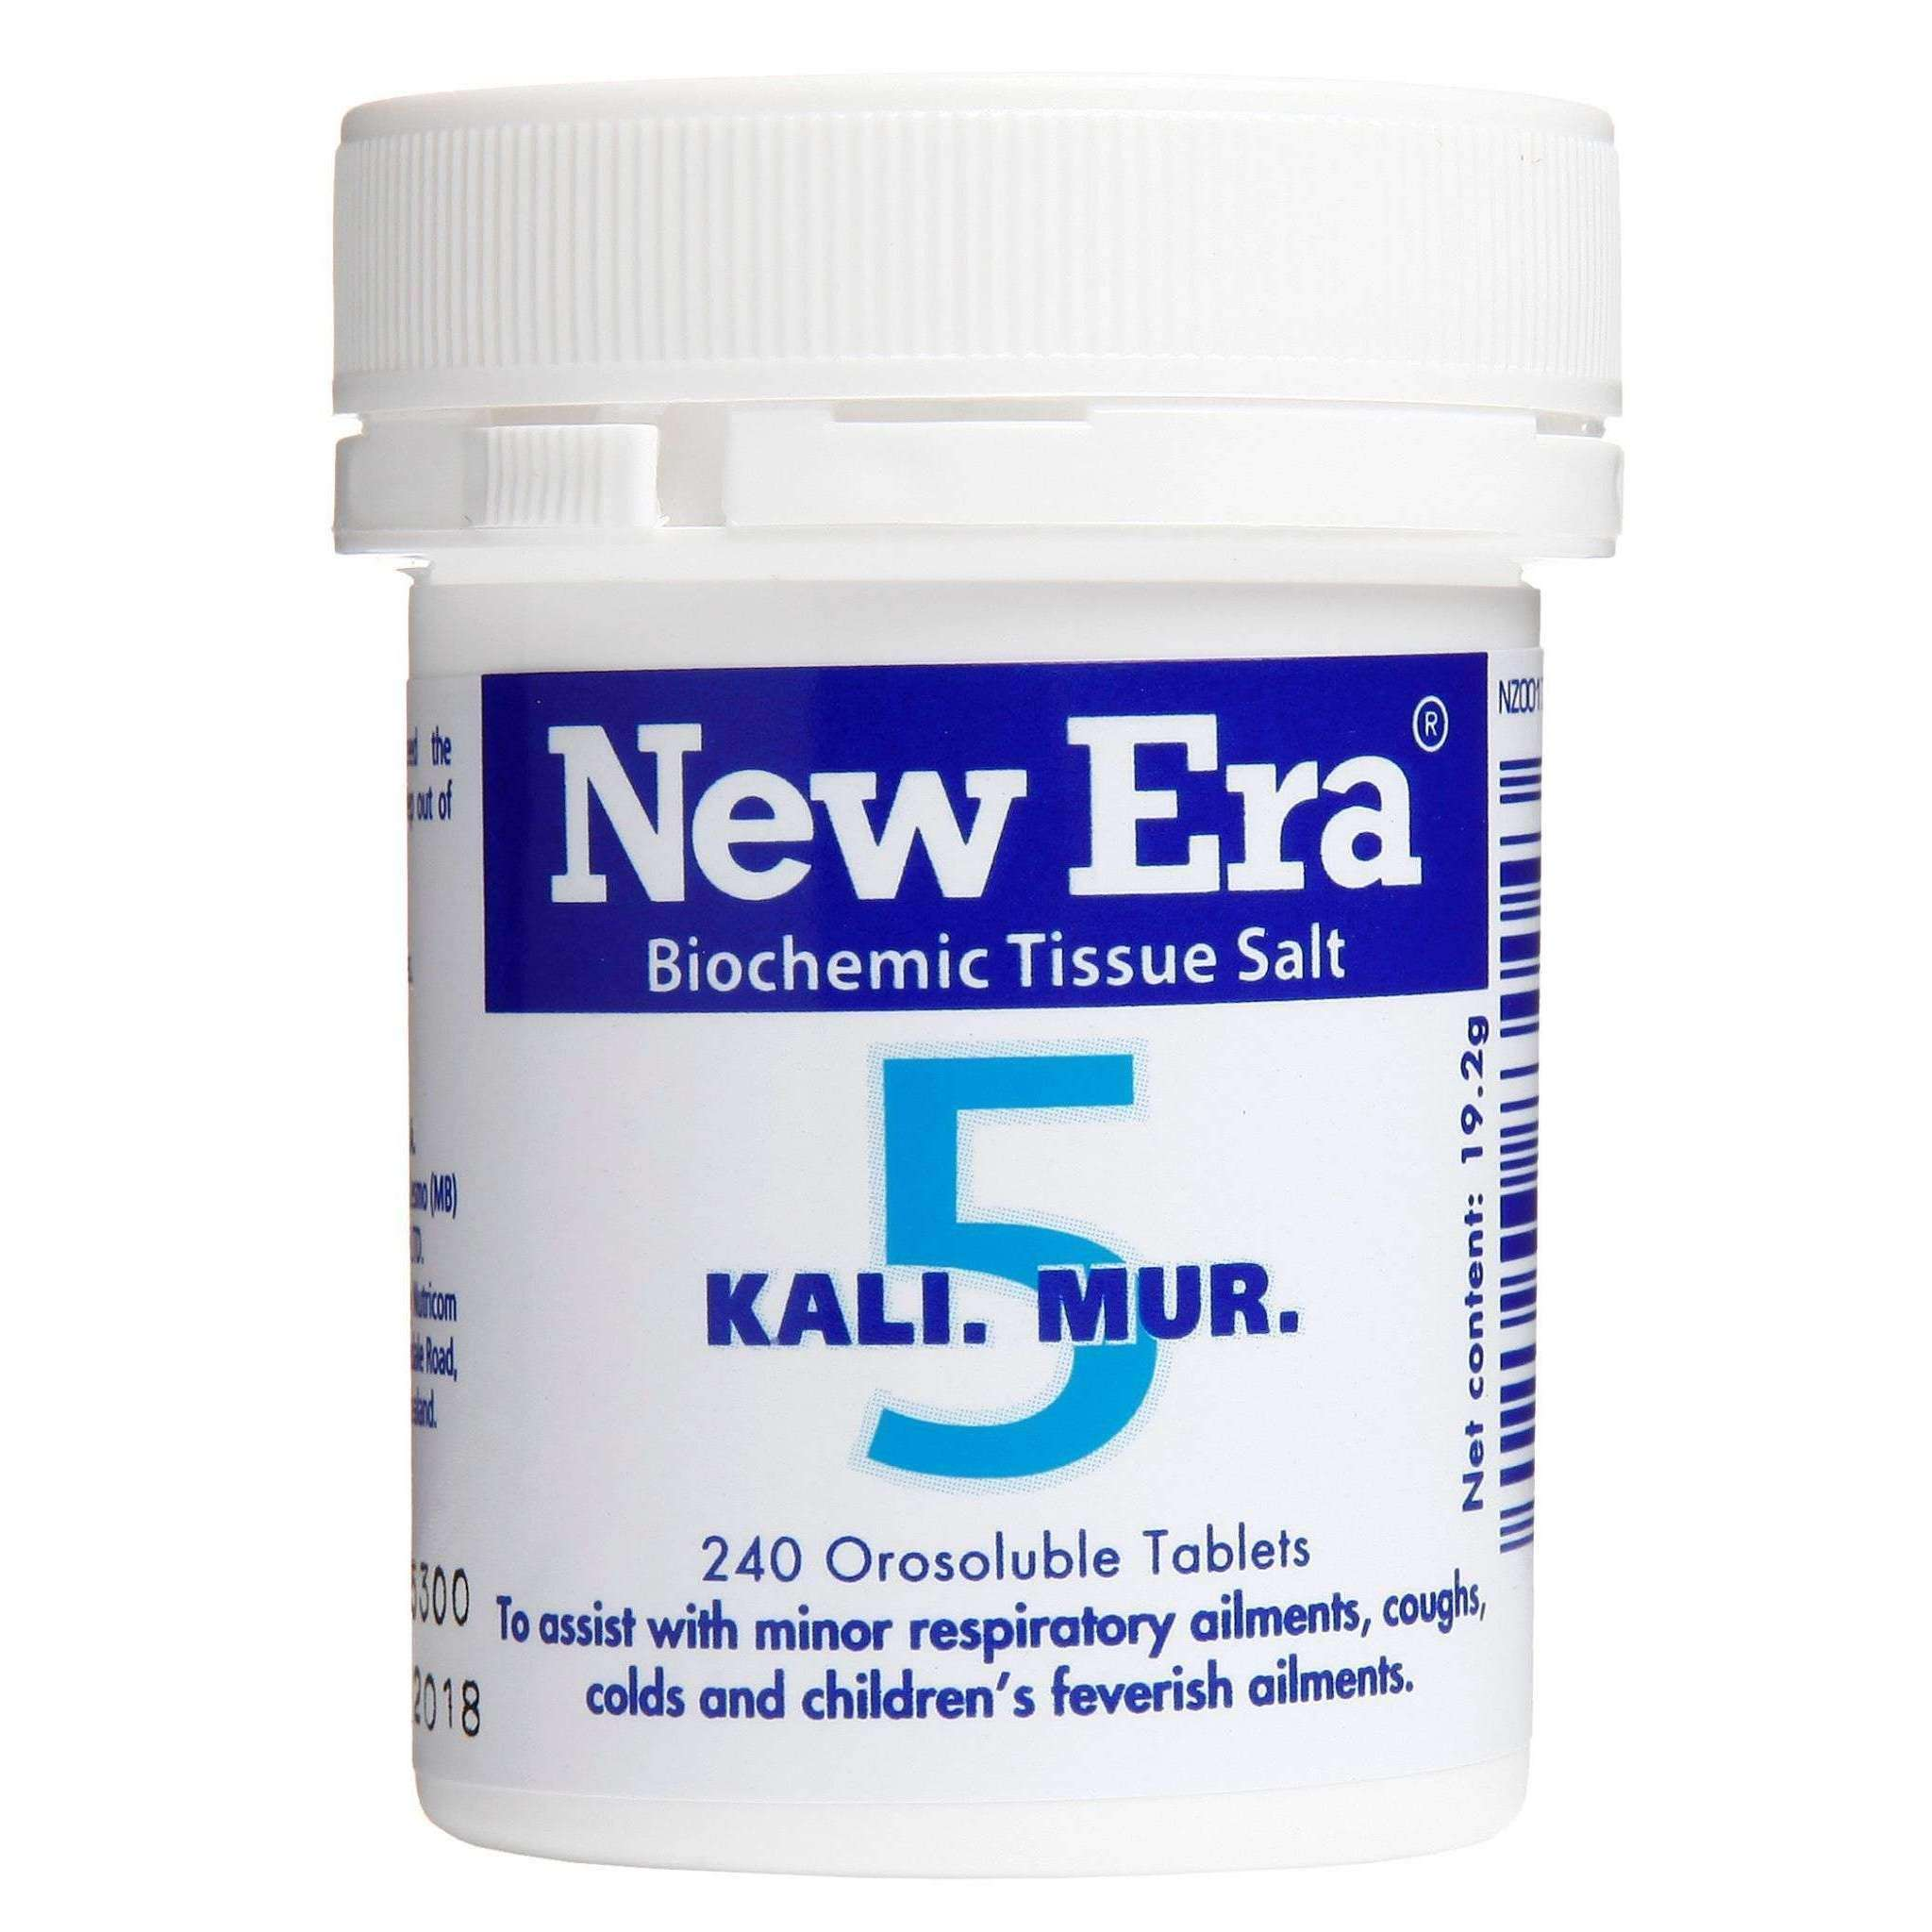 New Era No.5 Kali Mur - The Decongestant.